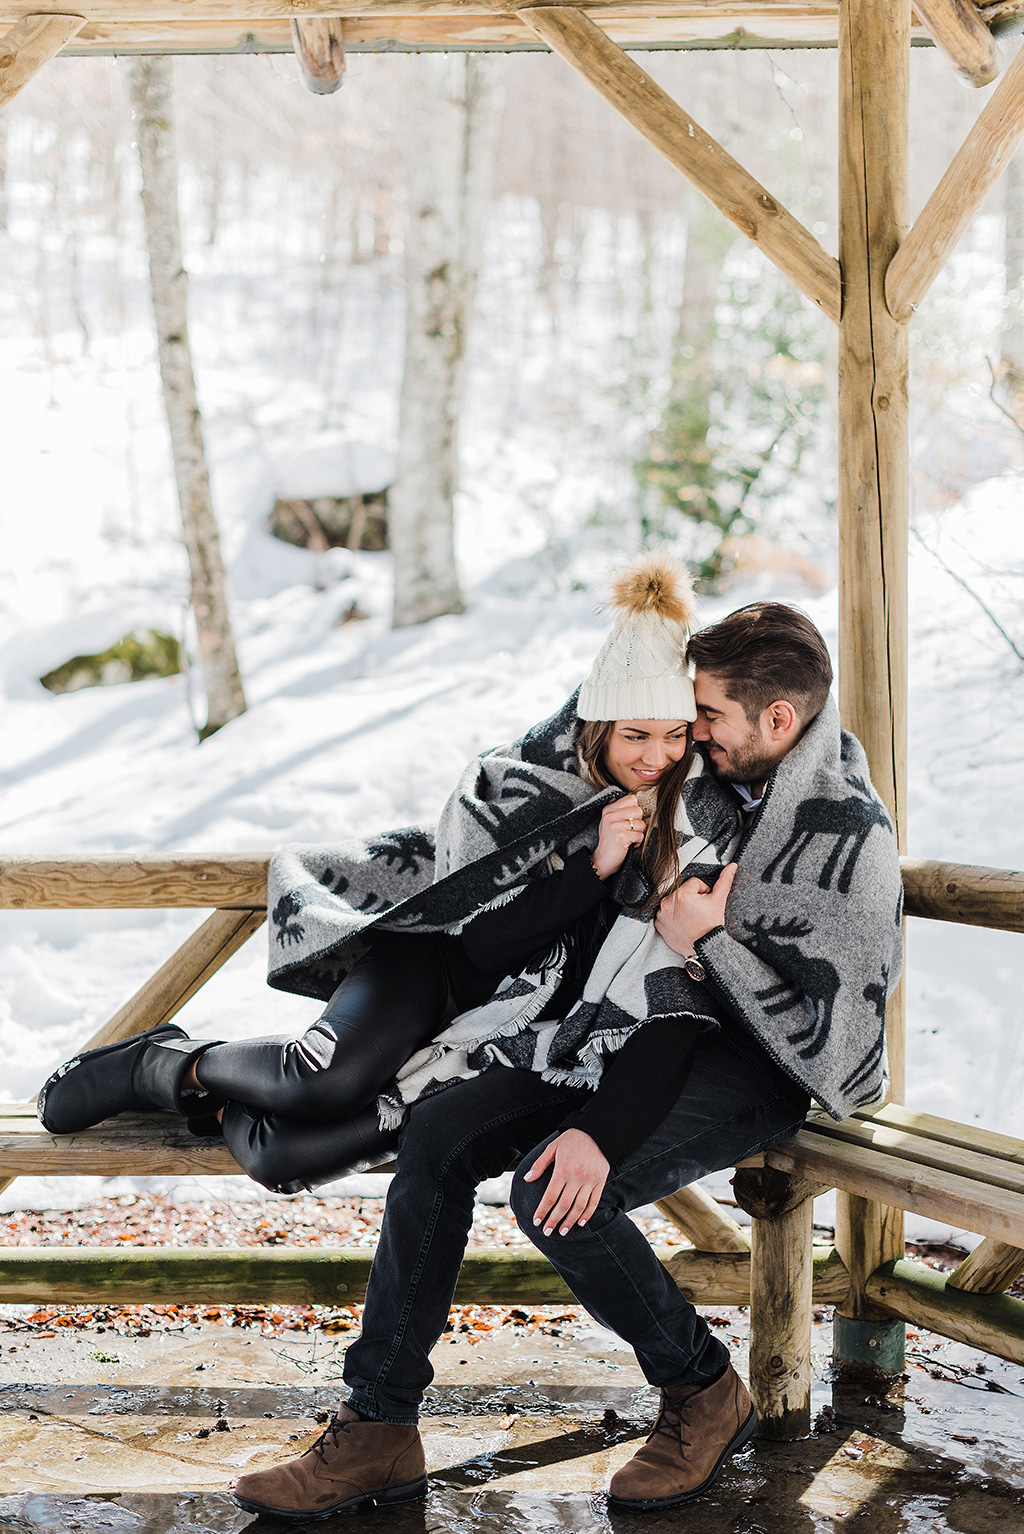 Prewedding φωτογράφιση στα χιόνια, winter elopement photoshoot, George Kostopoulos Fine Art Wedding Photography